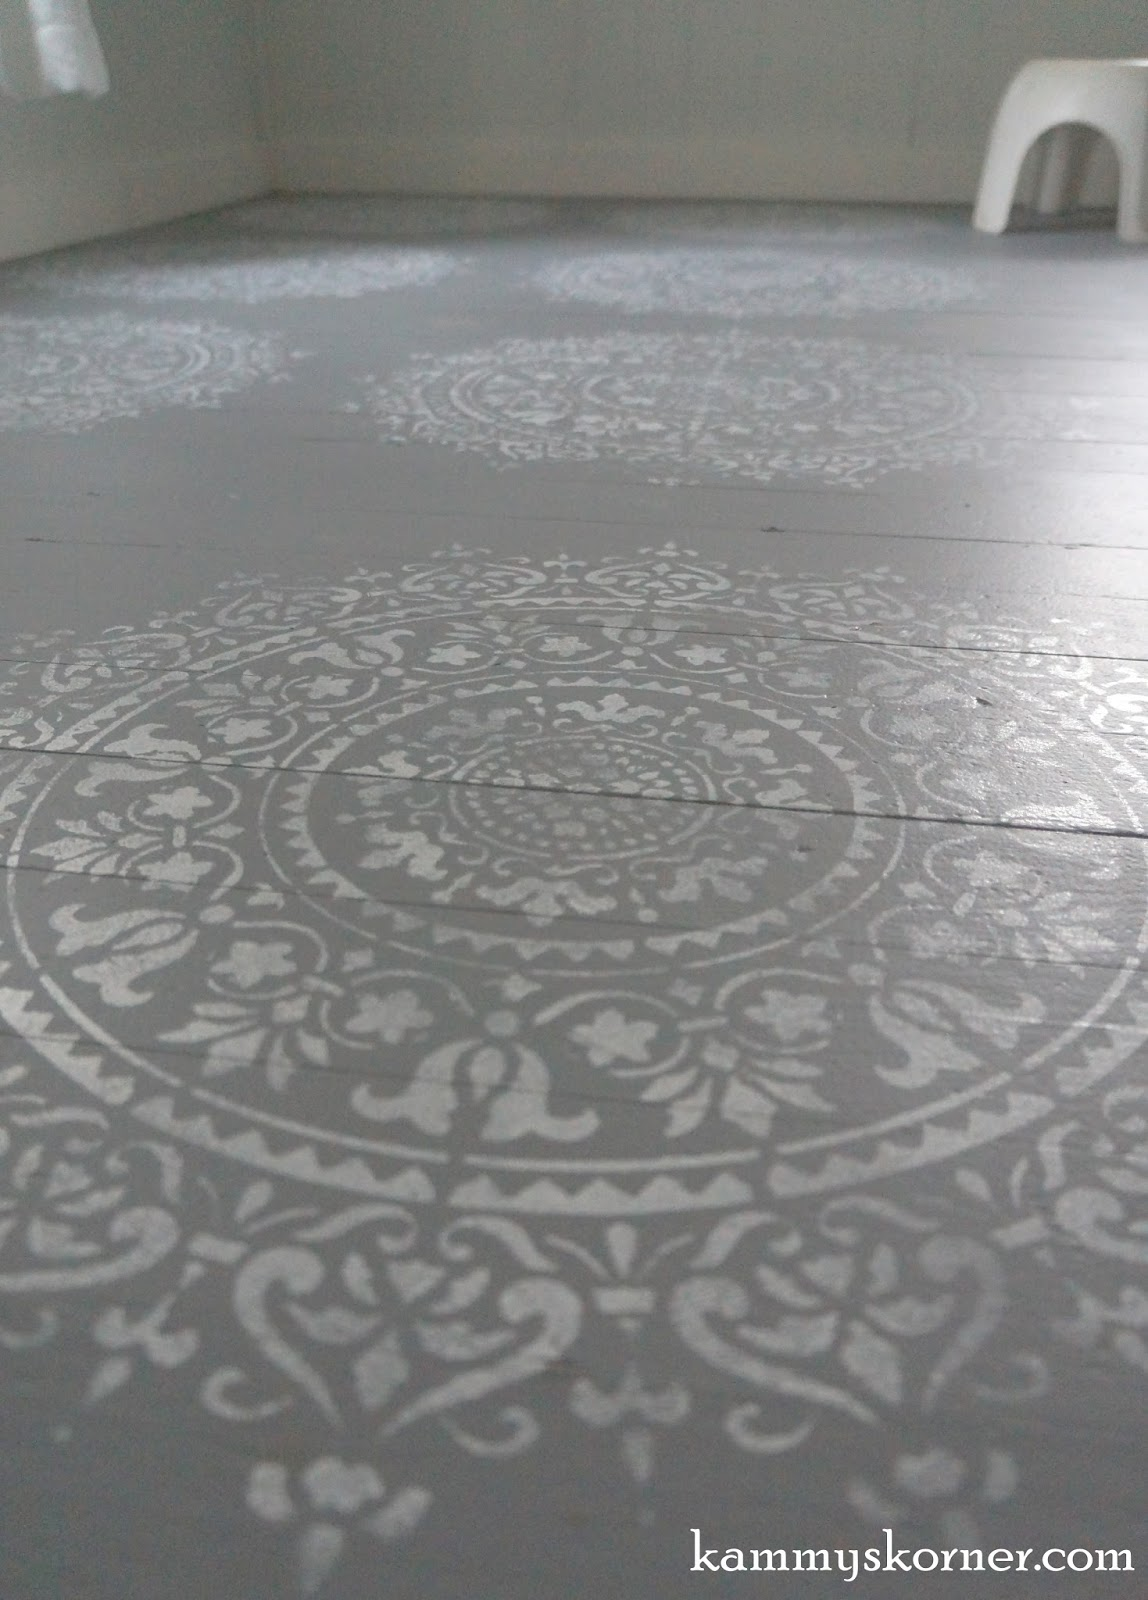 Kammys korner november 2016 i had this diamond design stencil though it was a bit smaller than i would have liked but it gave the floor that extra filled in look that i wanted amipublicfo Image collections